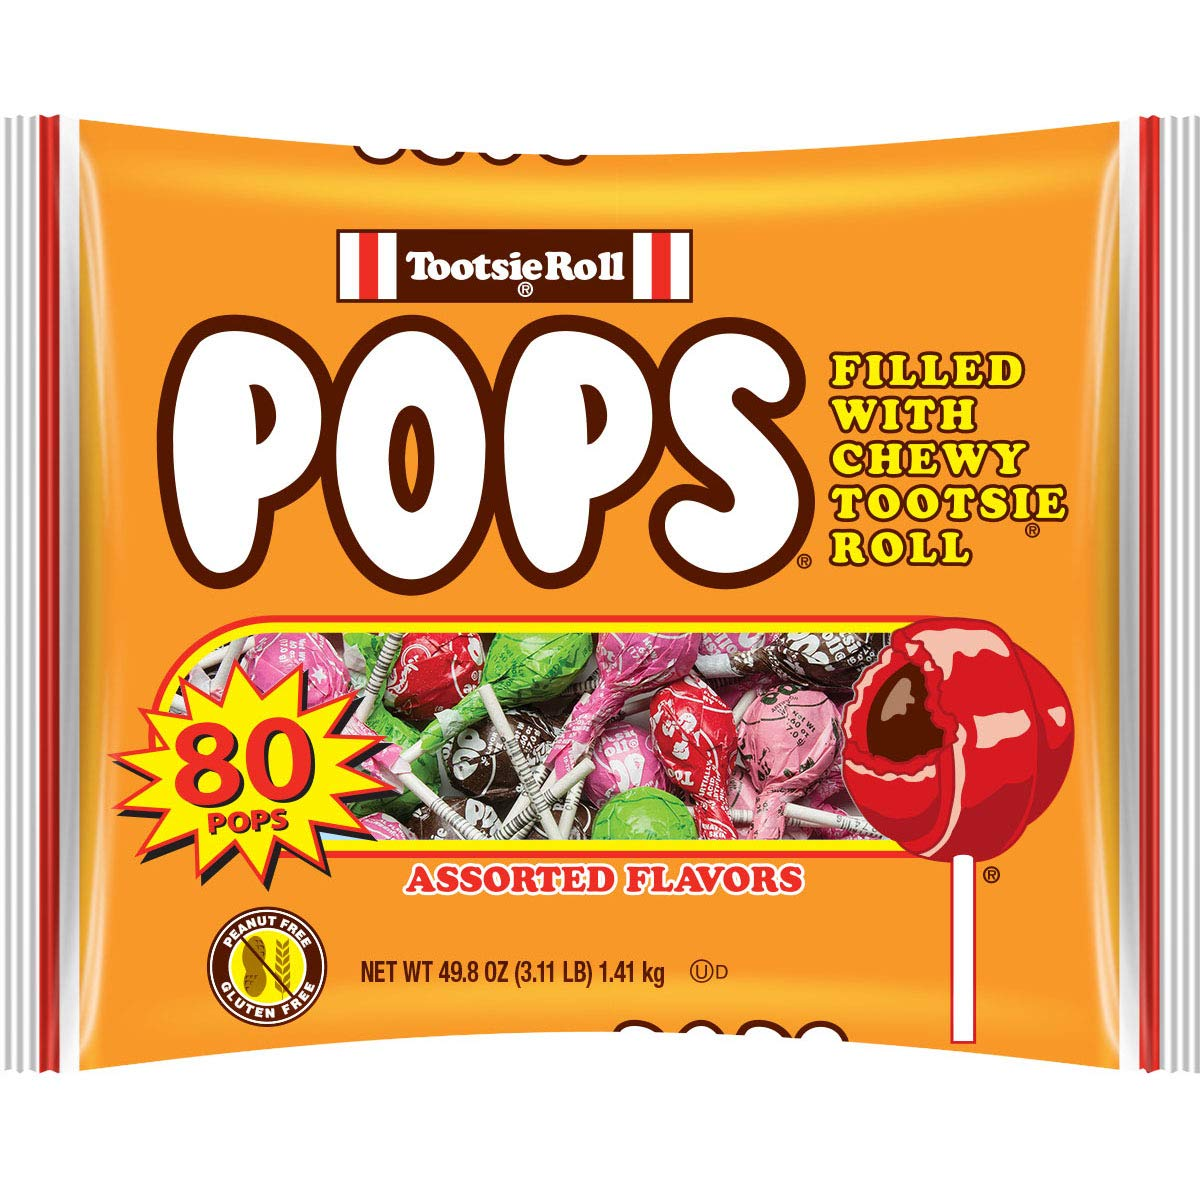 Tootsie Pops Original Assorted Flavors with Chocolatey Center, 80 Count Halloween Candy Giveaway Bag Peanut Free, Gluten Free by Tootsie Roll